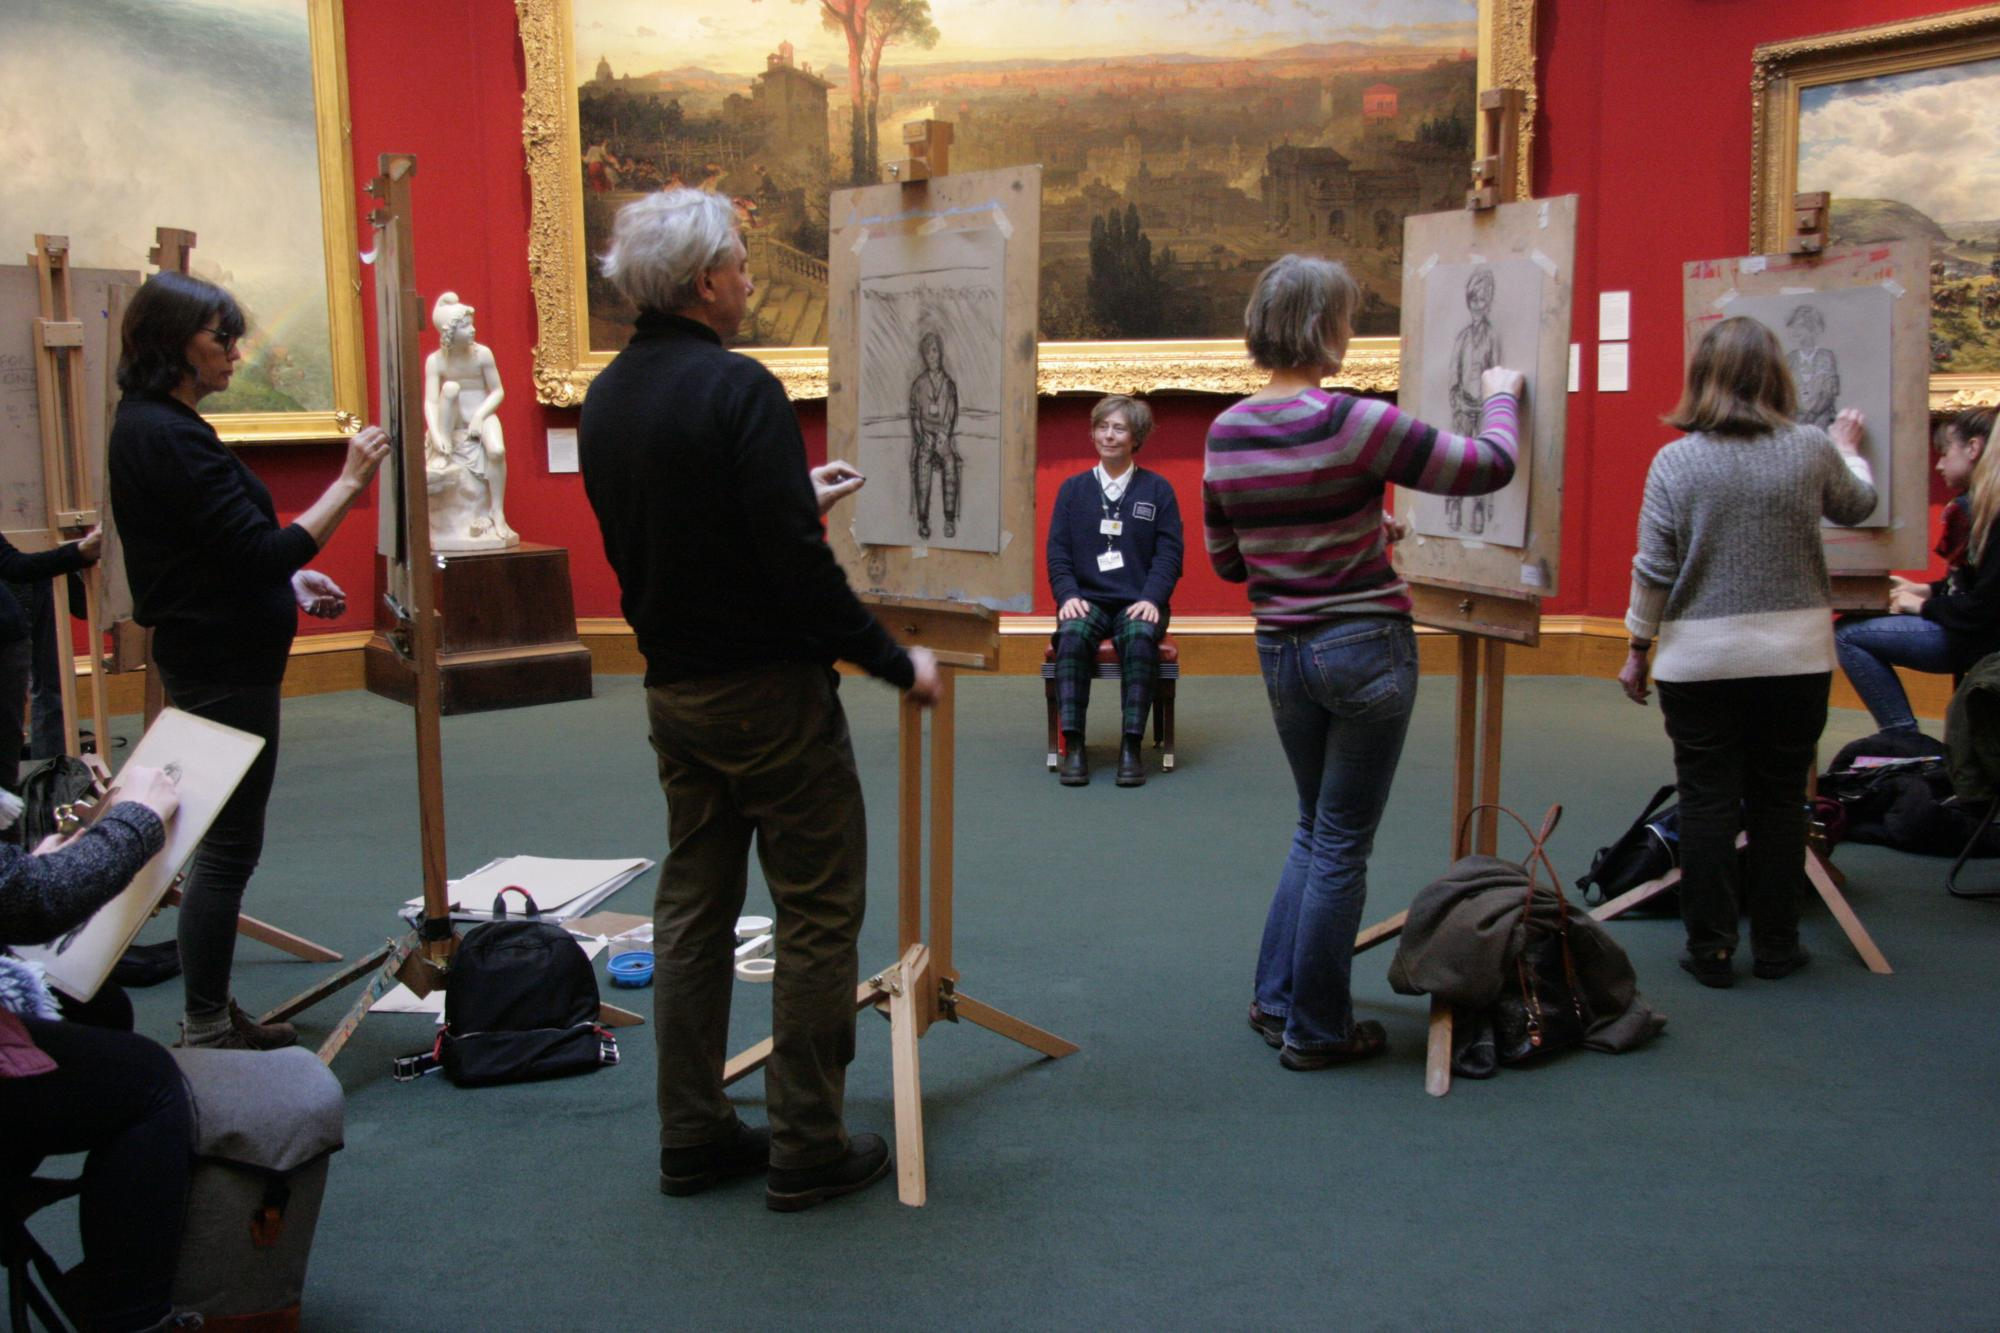 A group sketching on erasels in the Scottish National Gallery